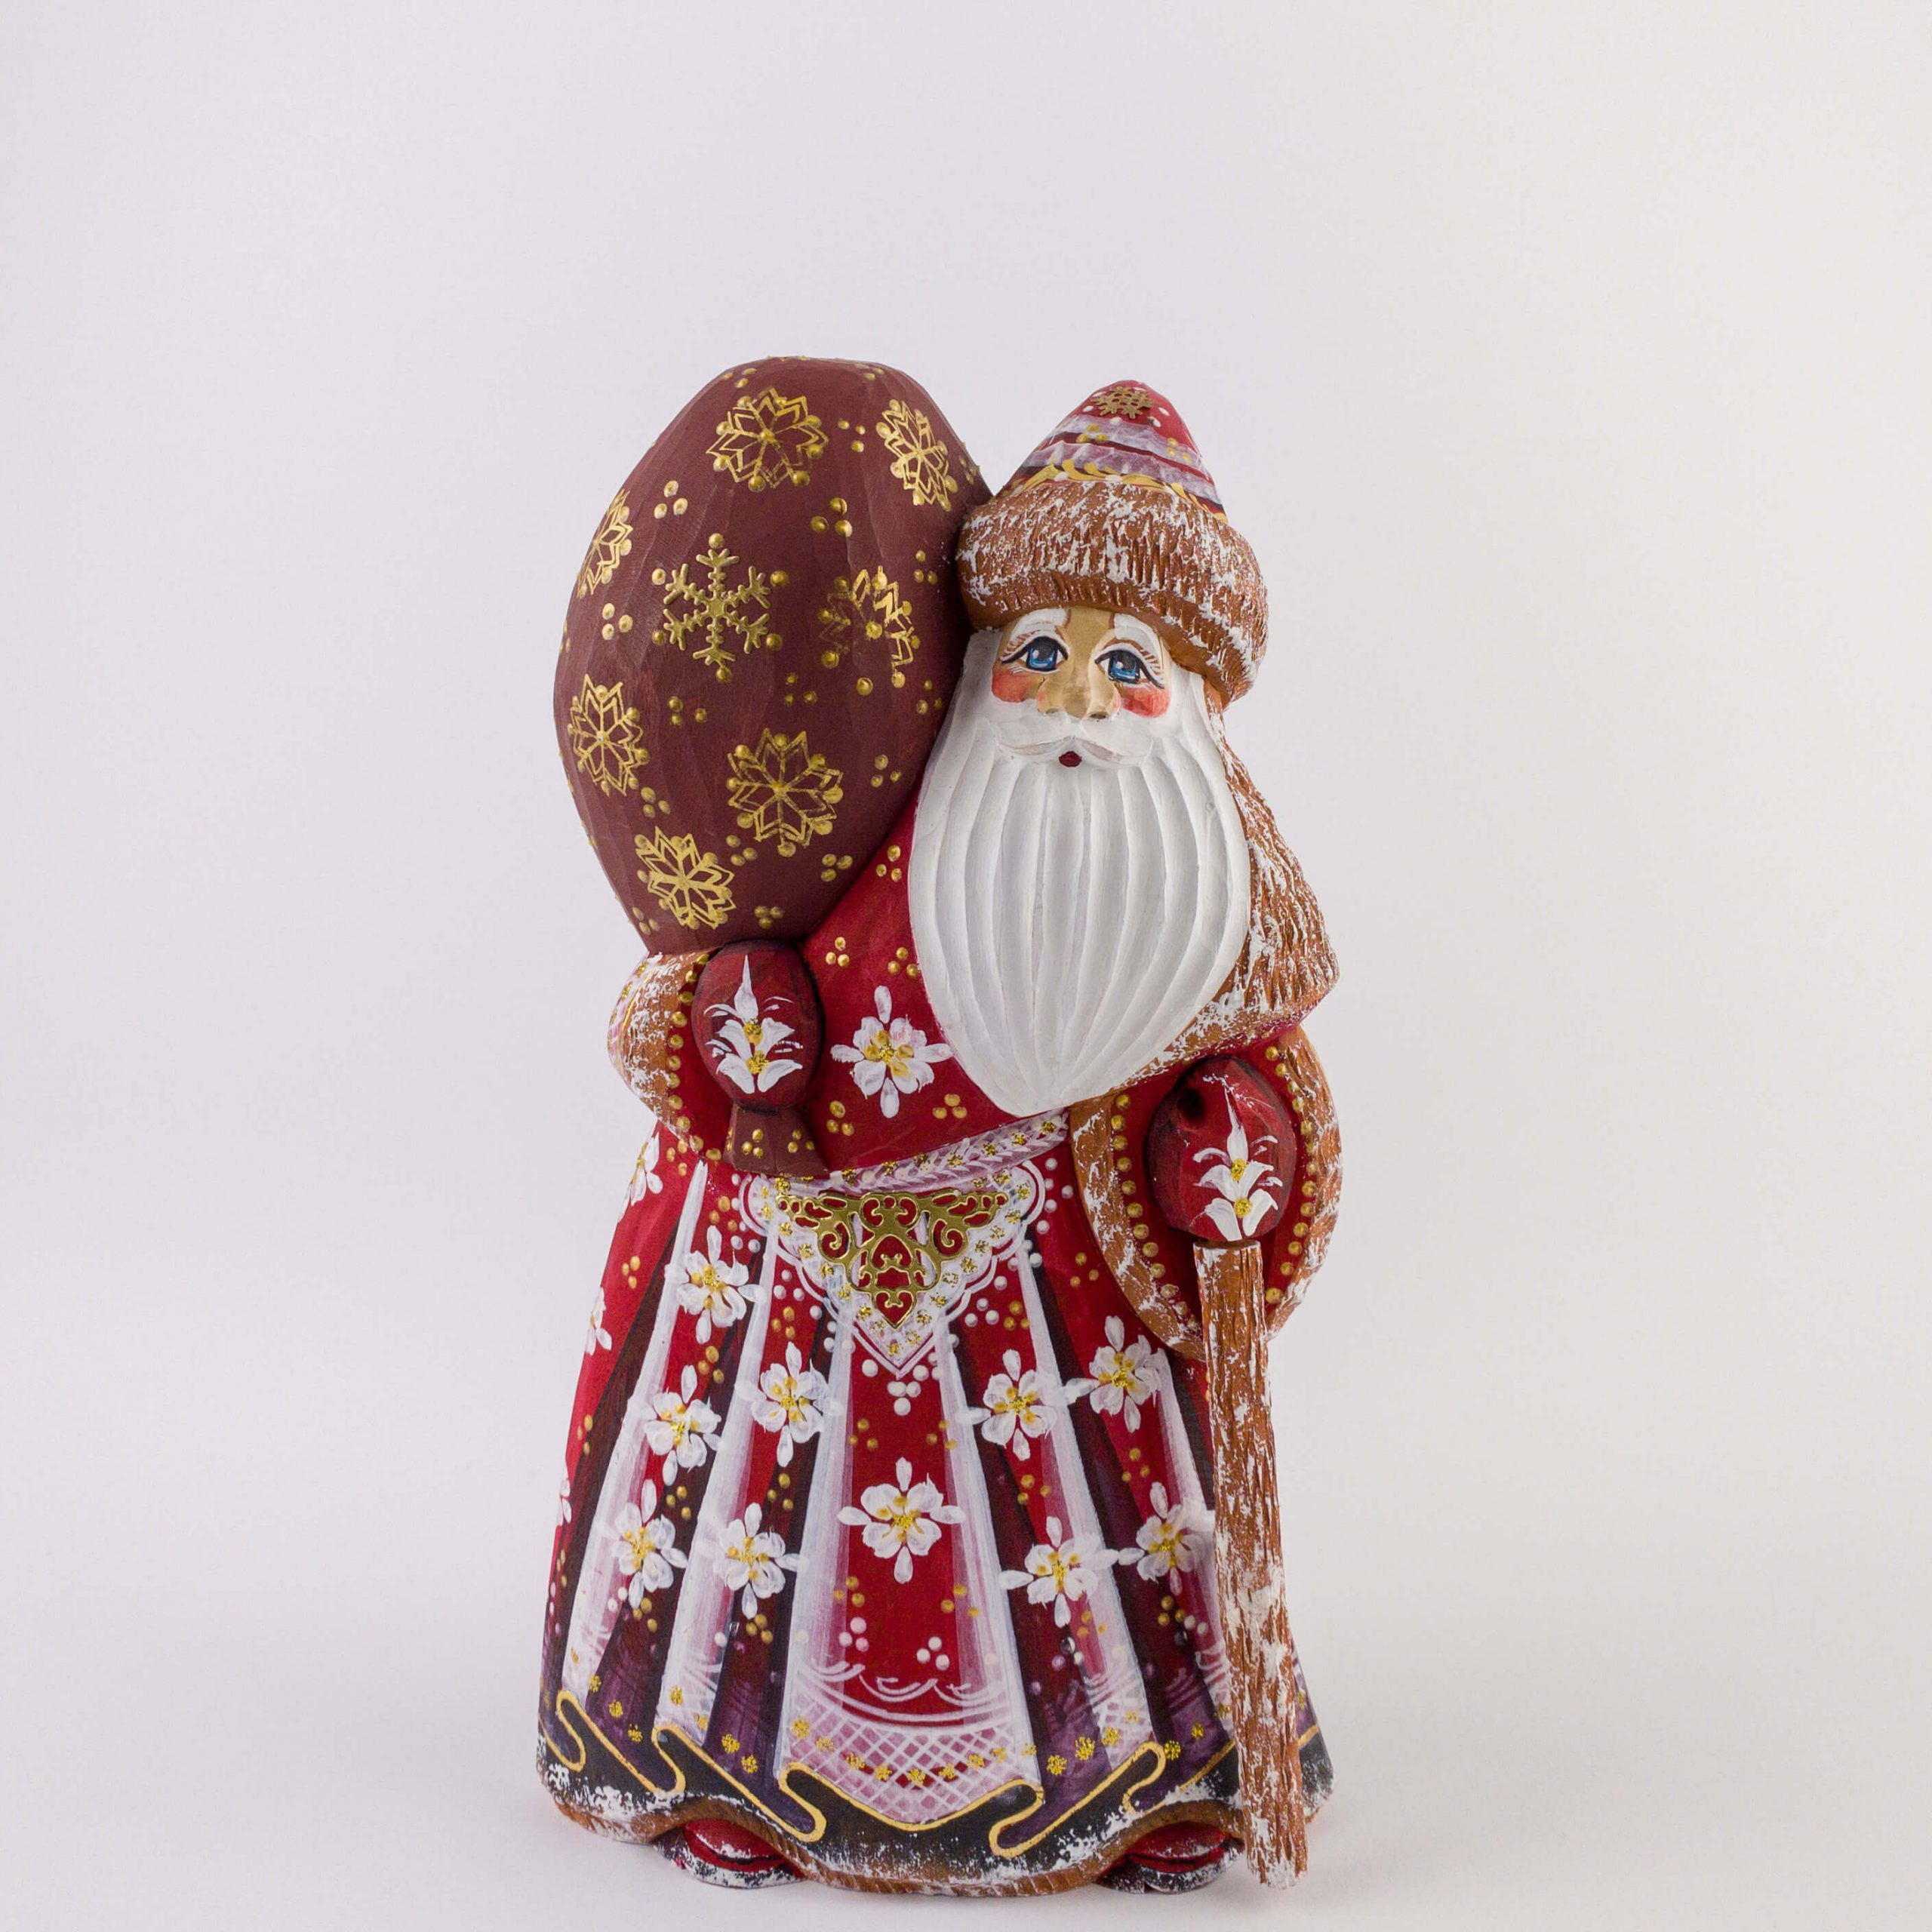 #MD0011 - Medium wooden Santa figure